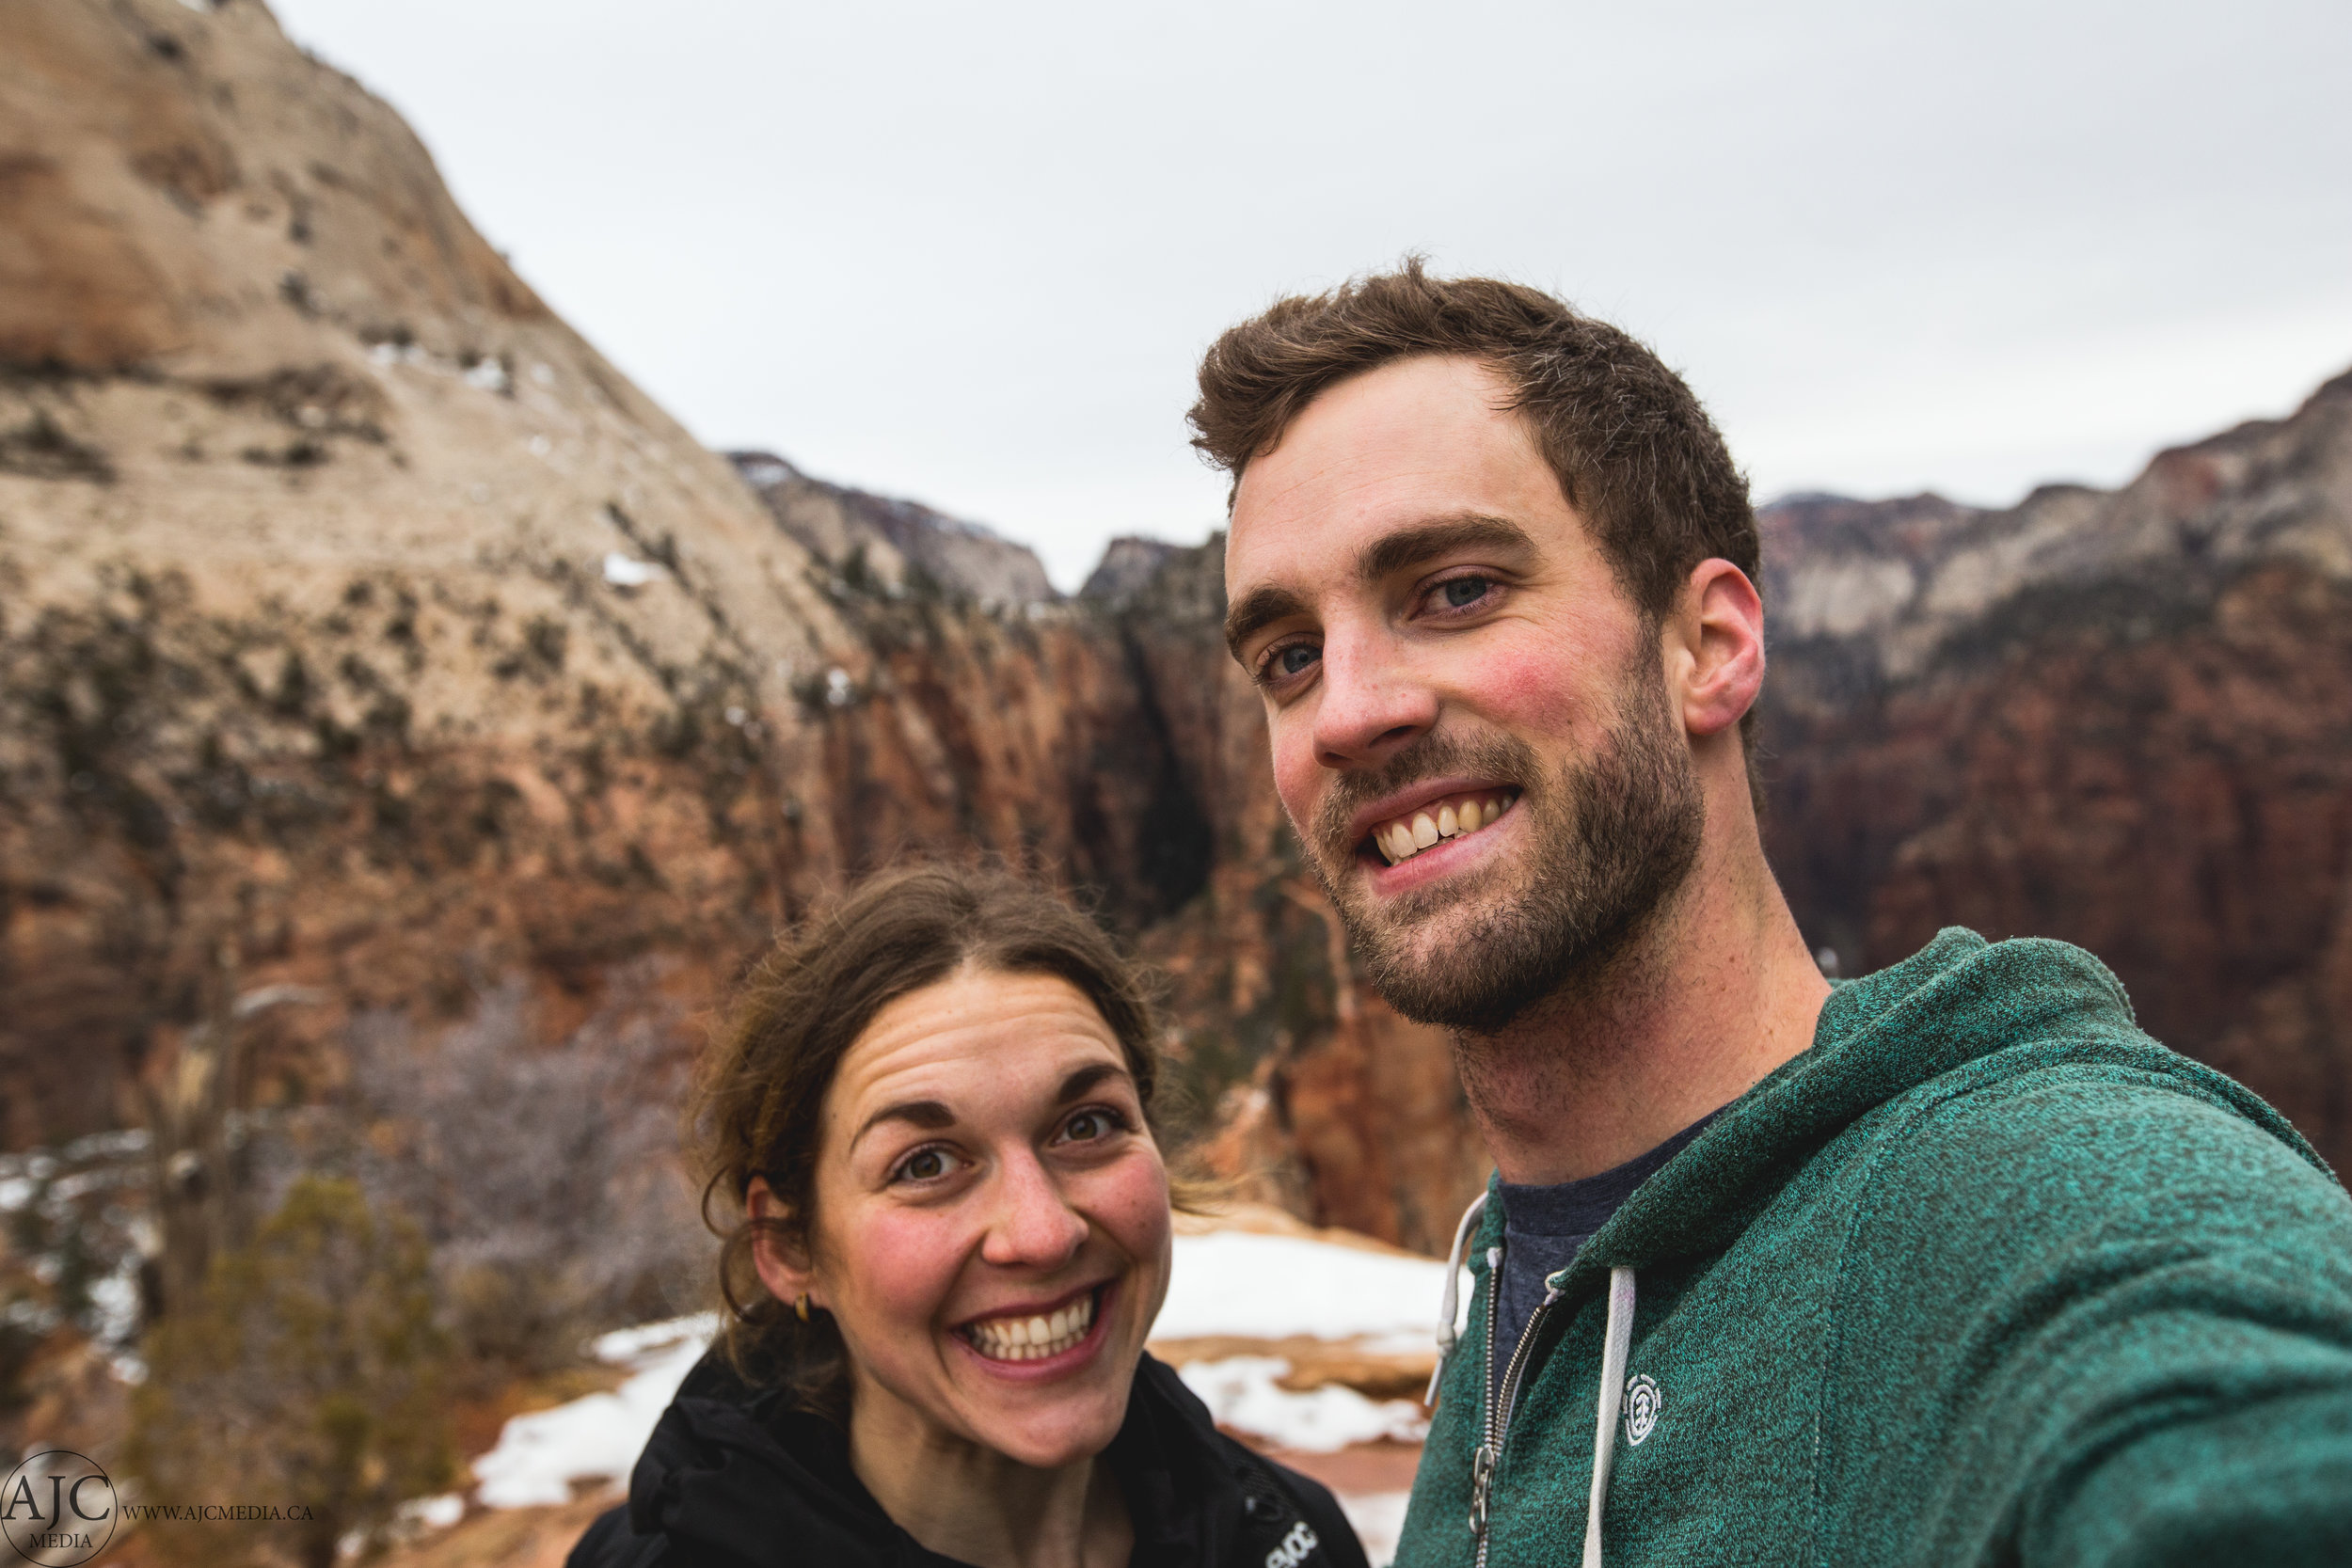 The happy hiking couple.